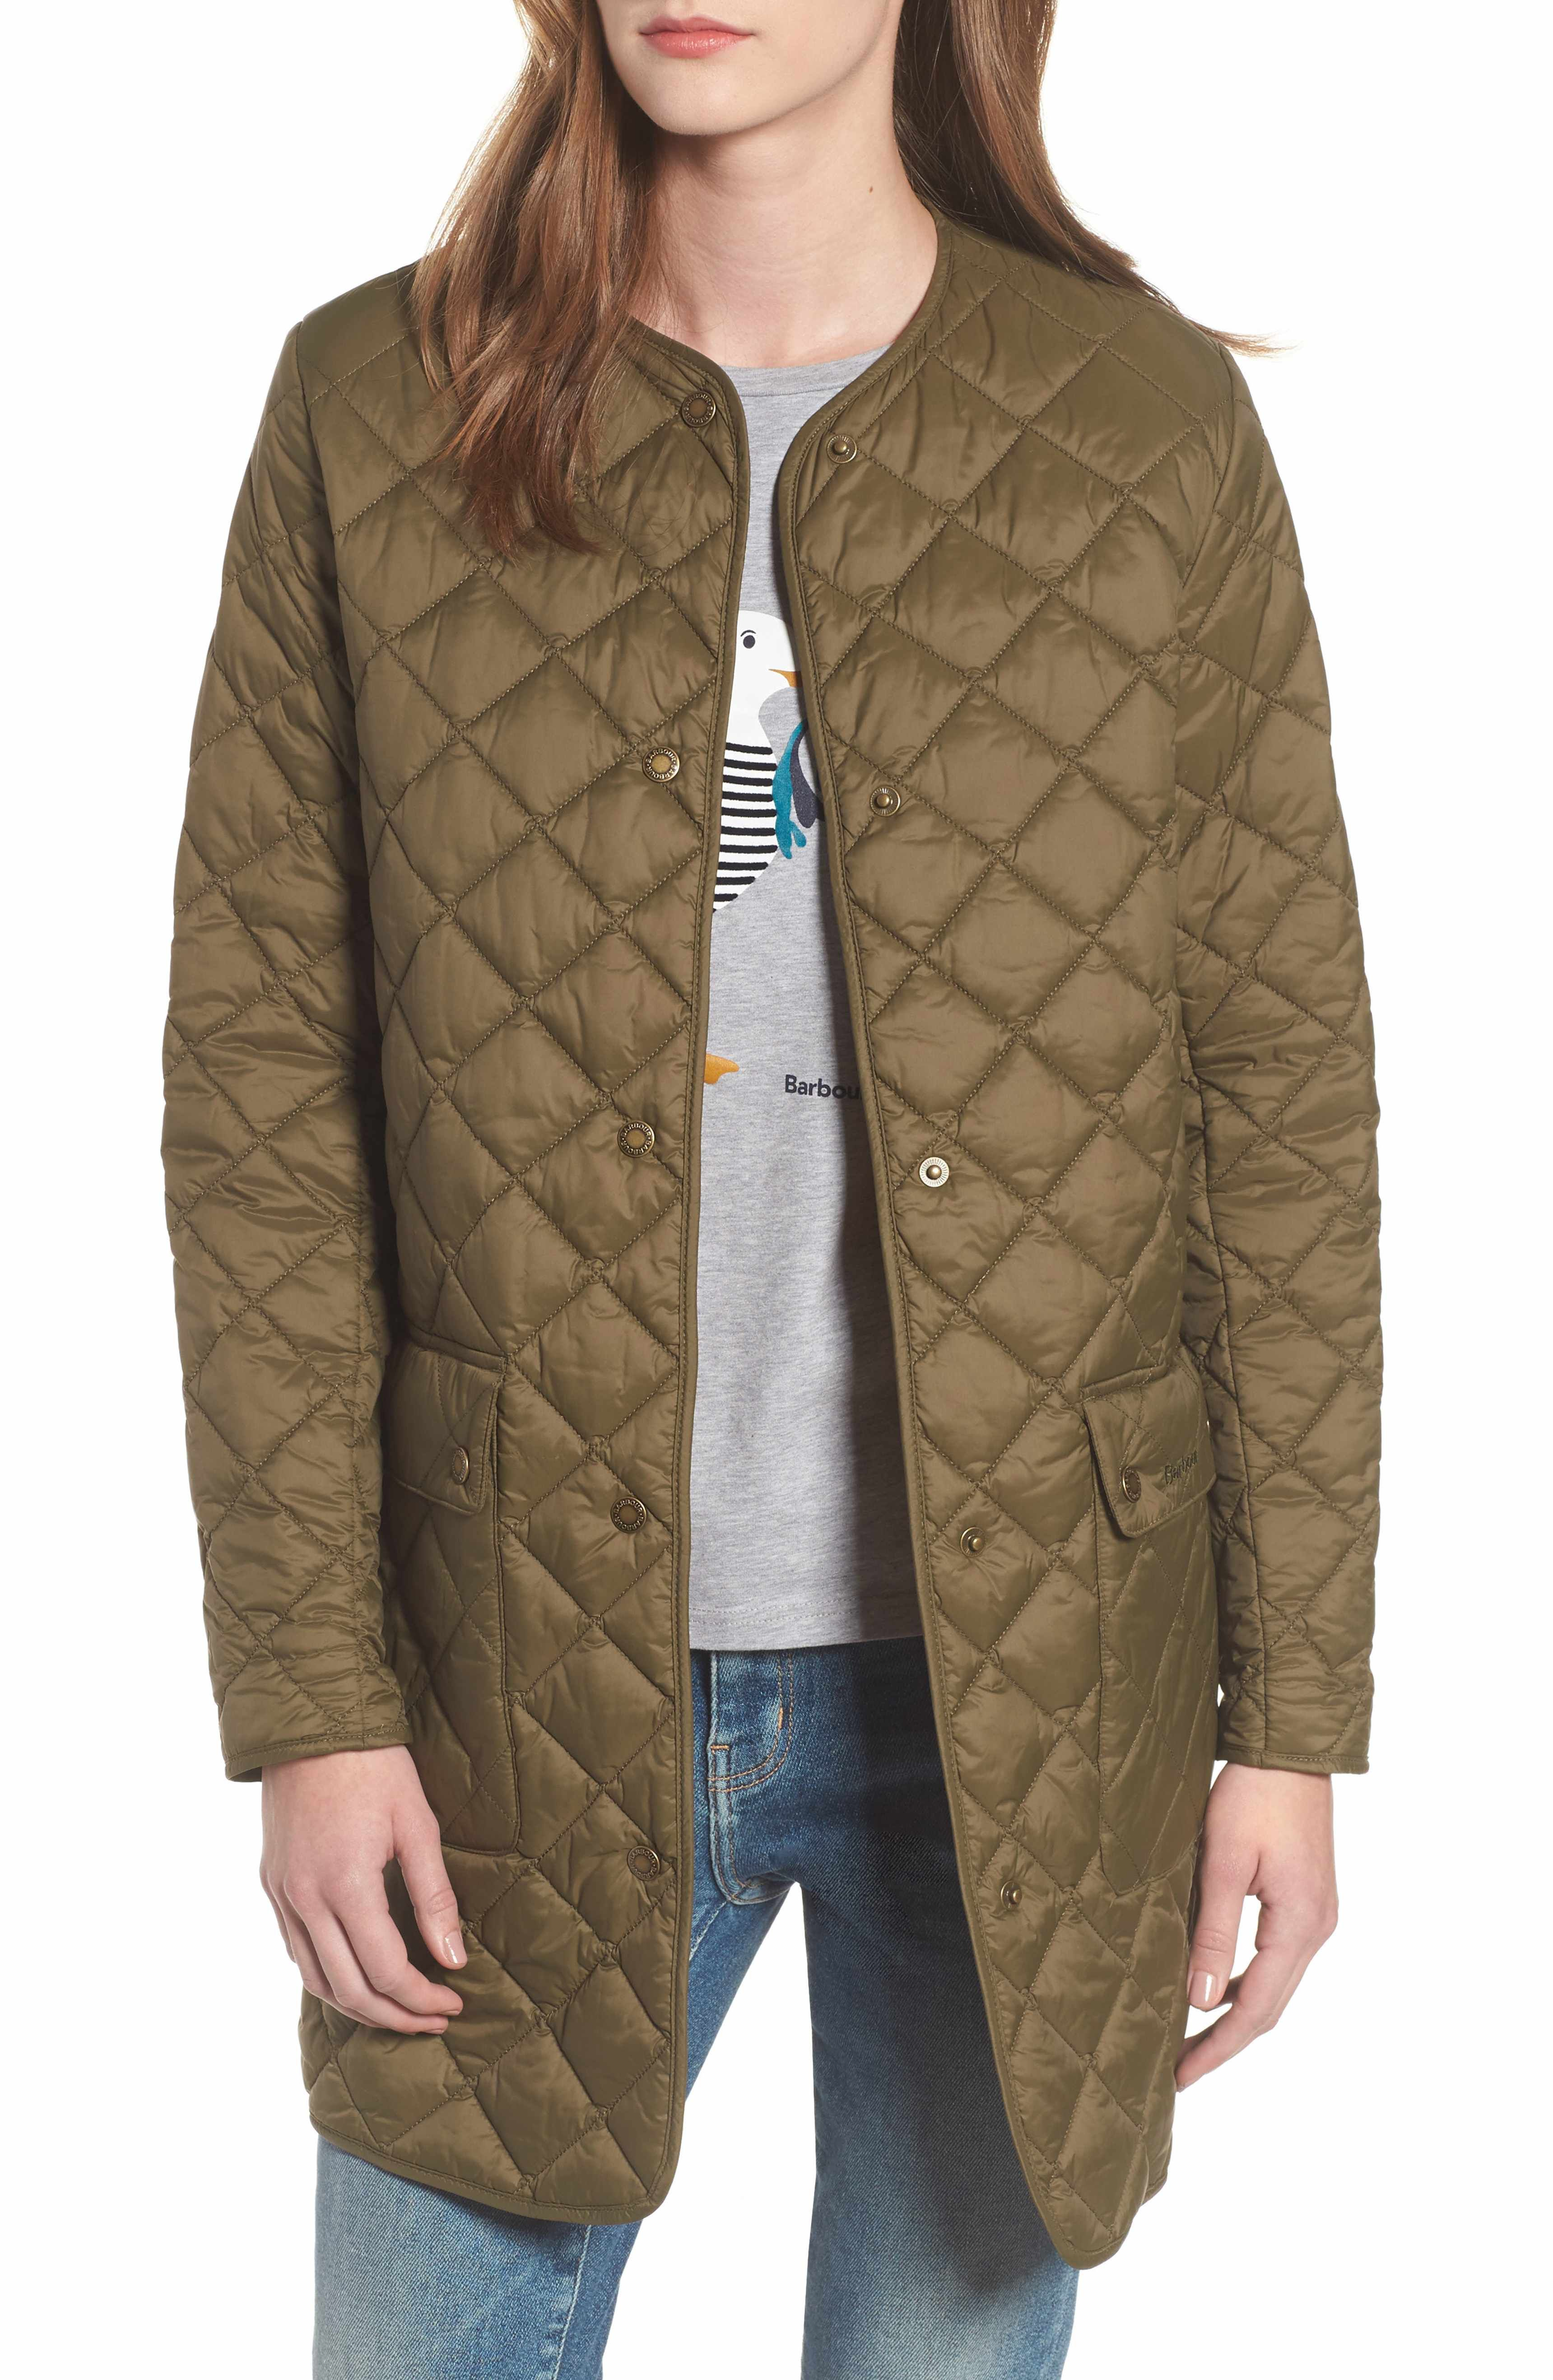 Main Image Barbour Skirden Quilted Jacket Quilted Jacket Jackets Top Clothing Brands